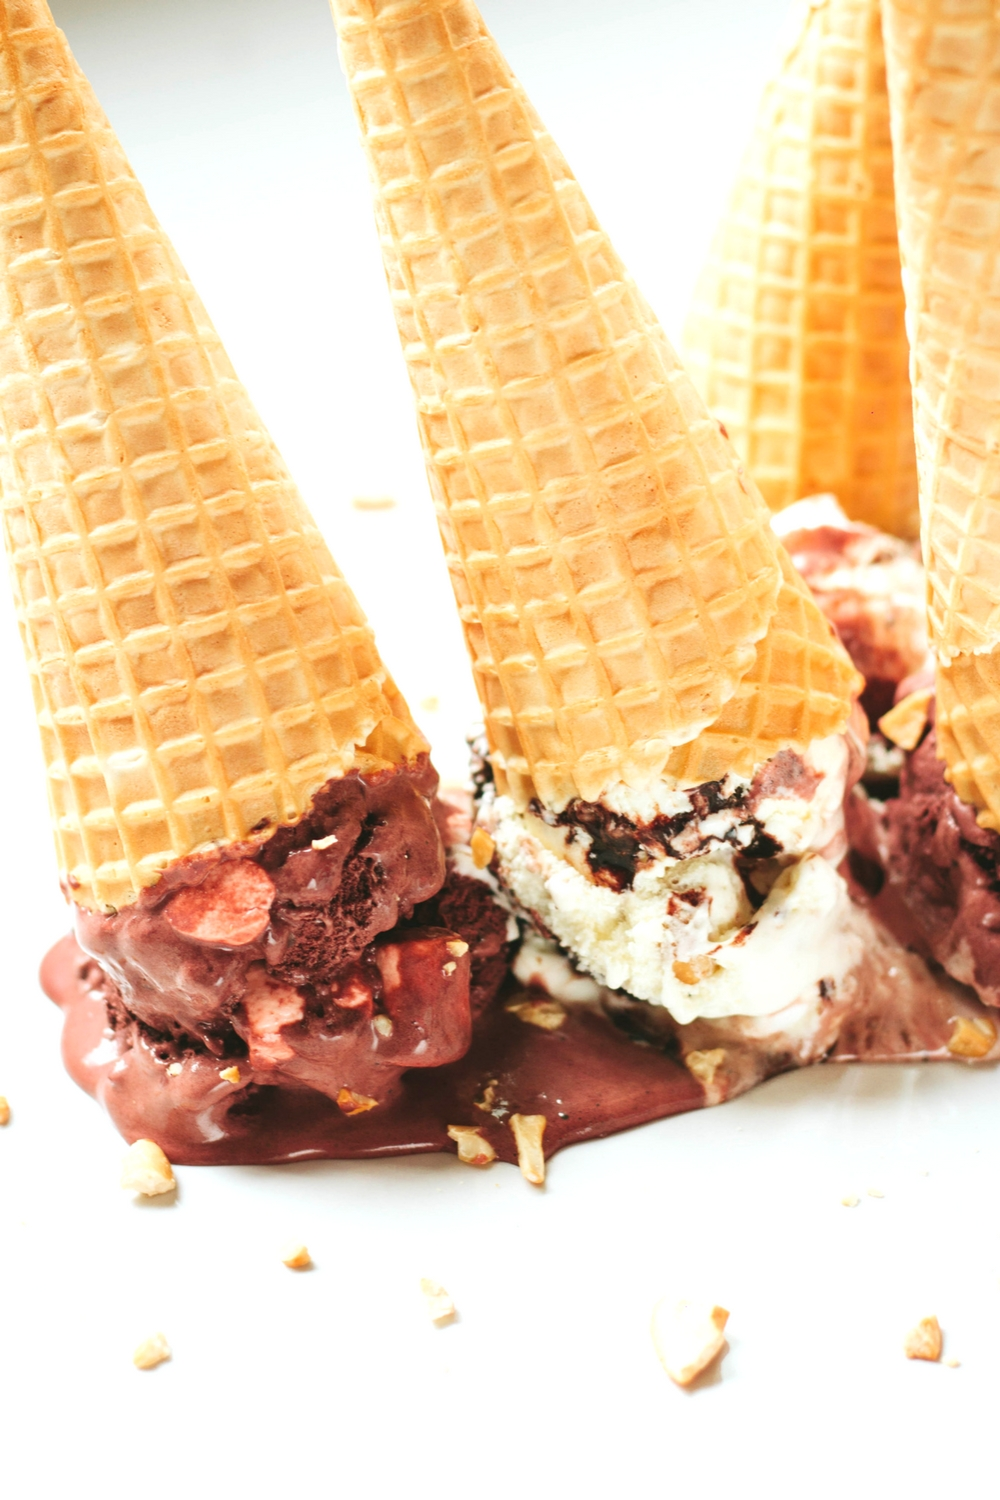 Tasty Tuesday + Cool Things - Ice Cream